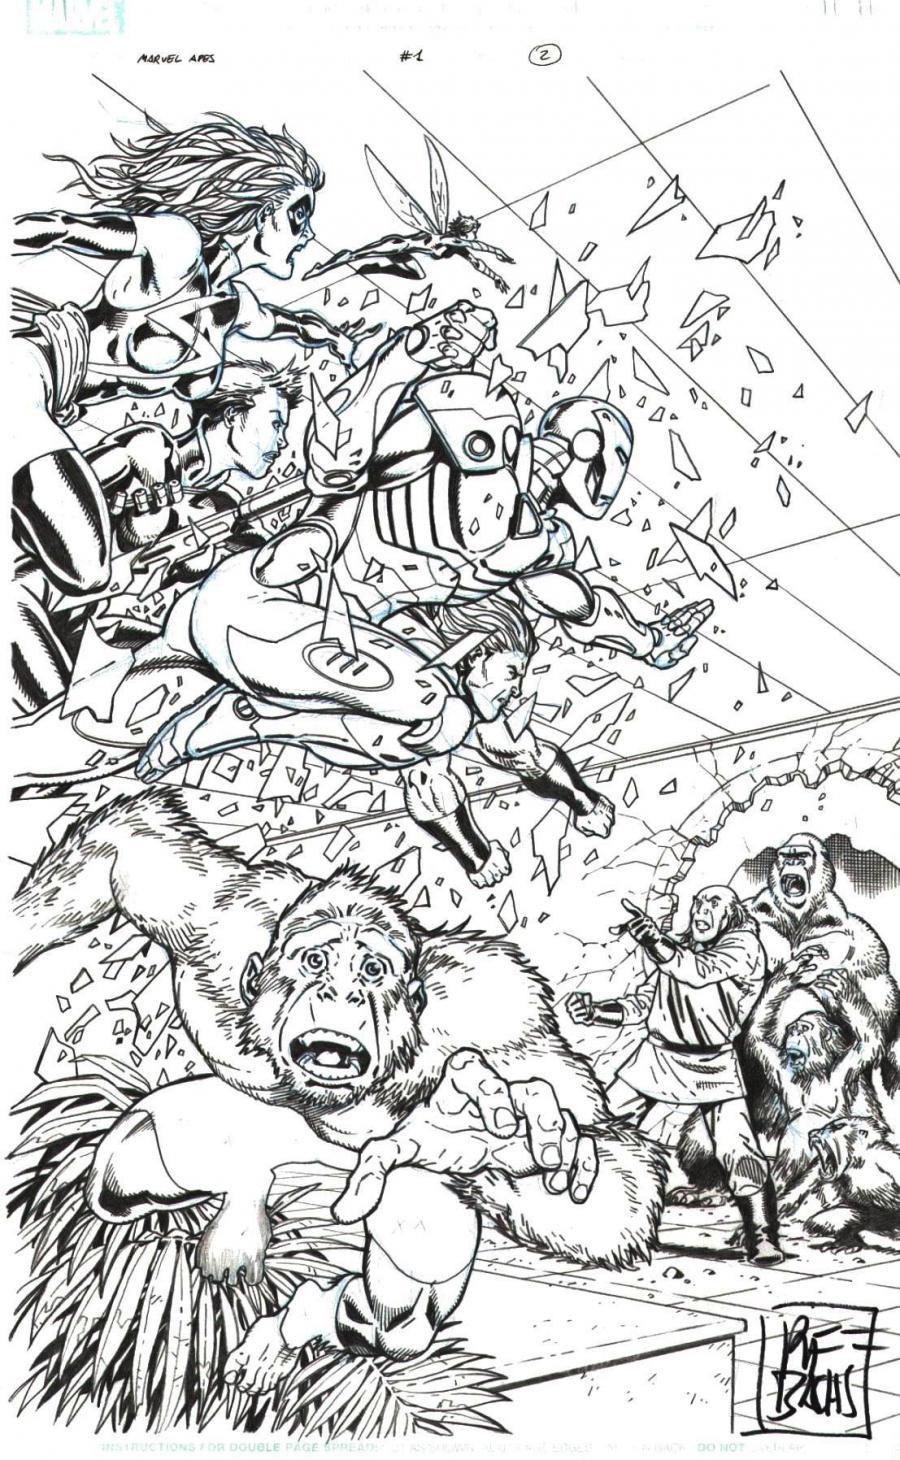 MARVEL Apes original comic art issue 1 page 2